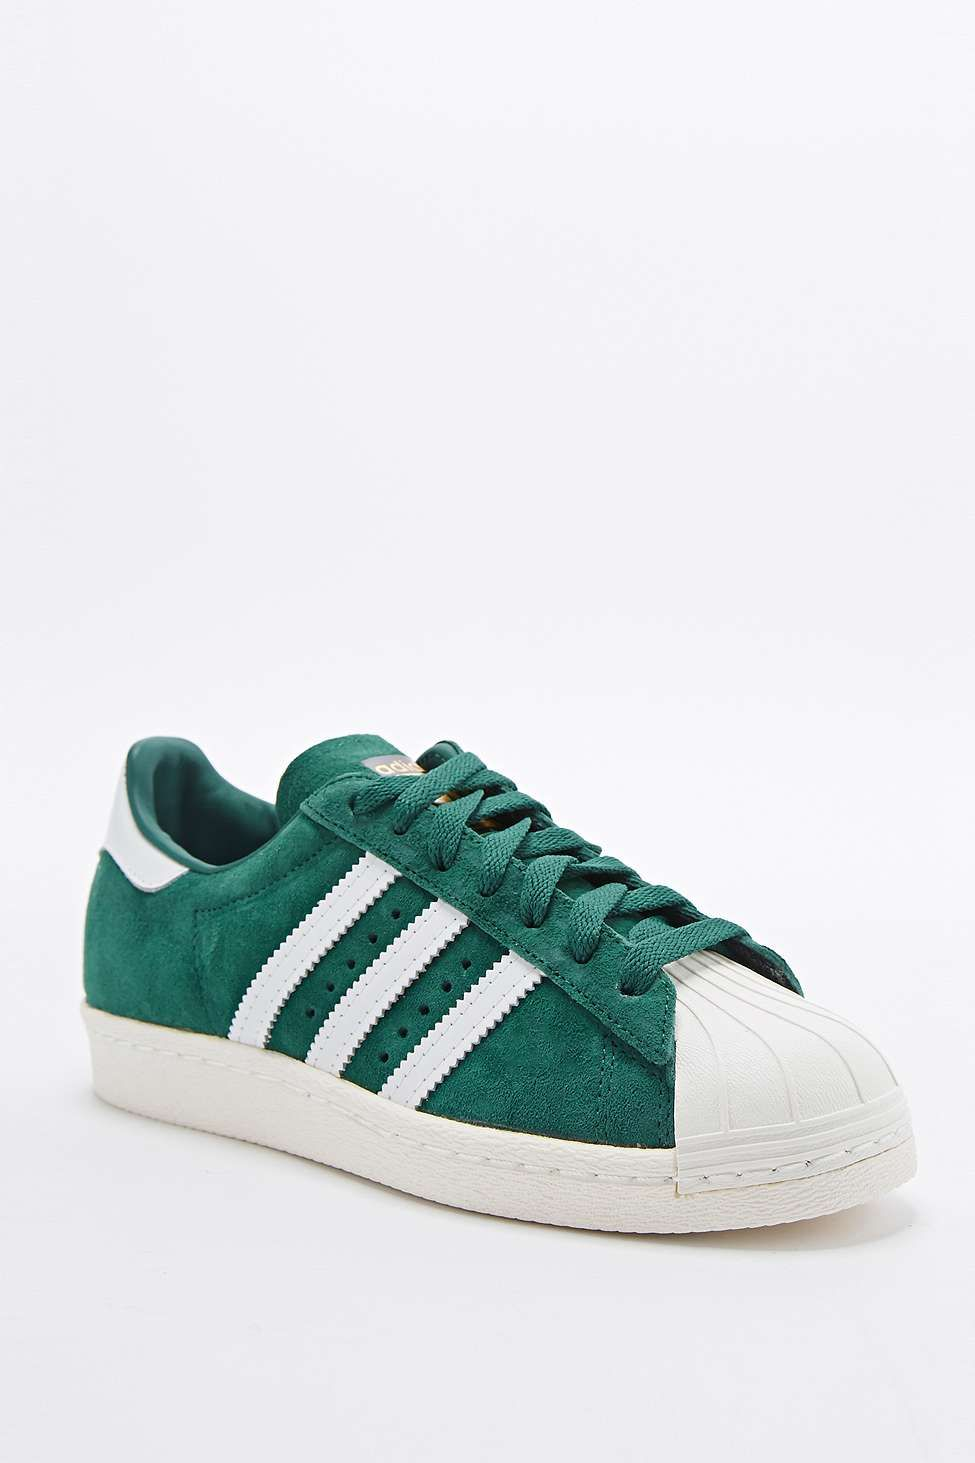 adidas Originals Baskets Superstar 80s Delux en daim vert